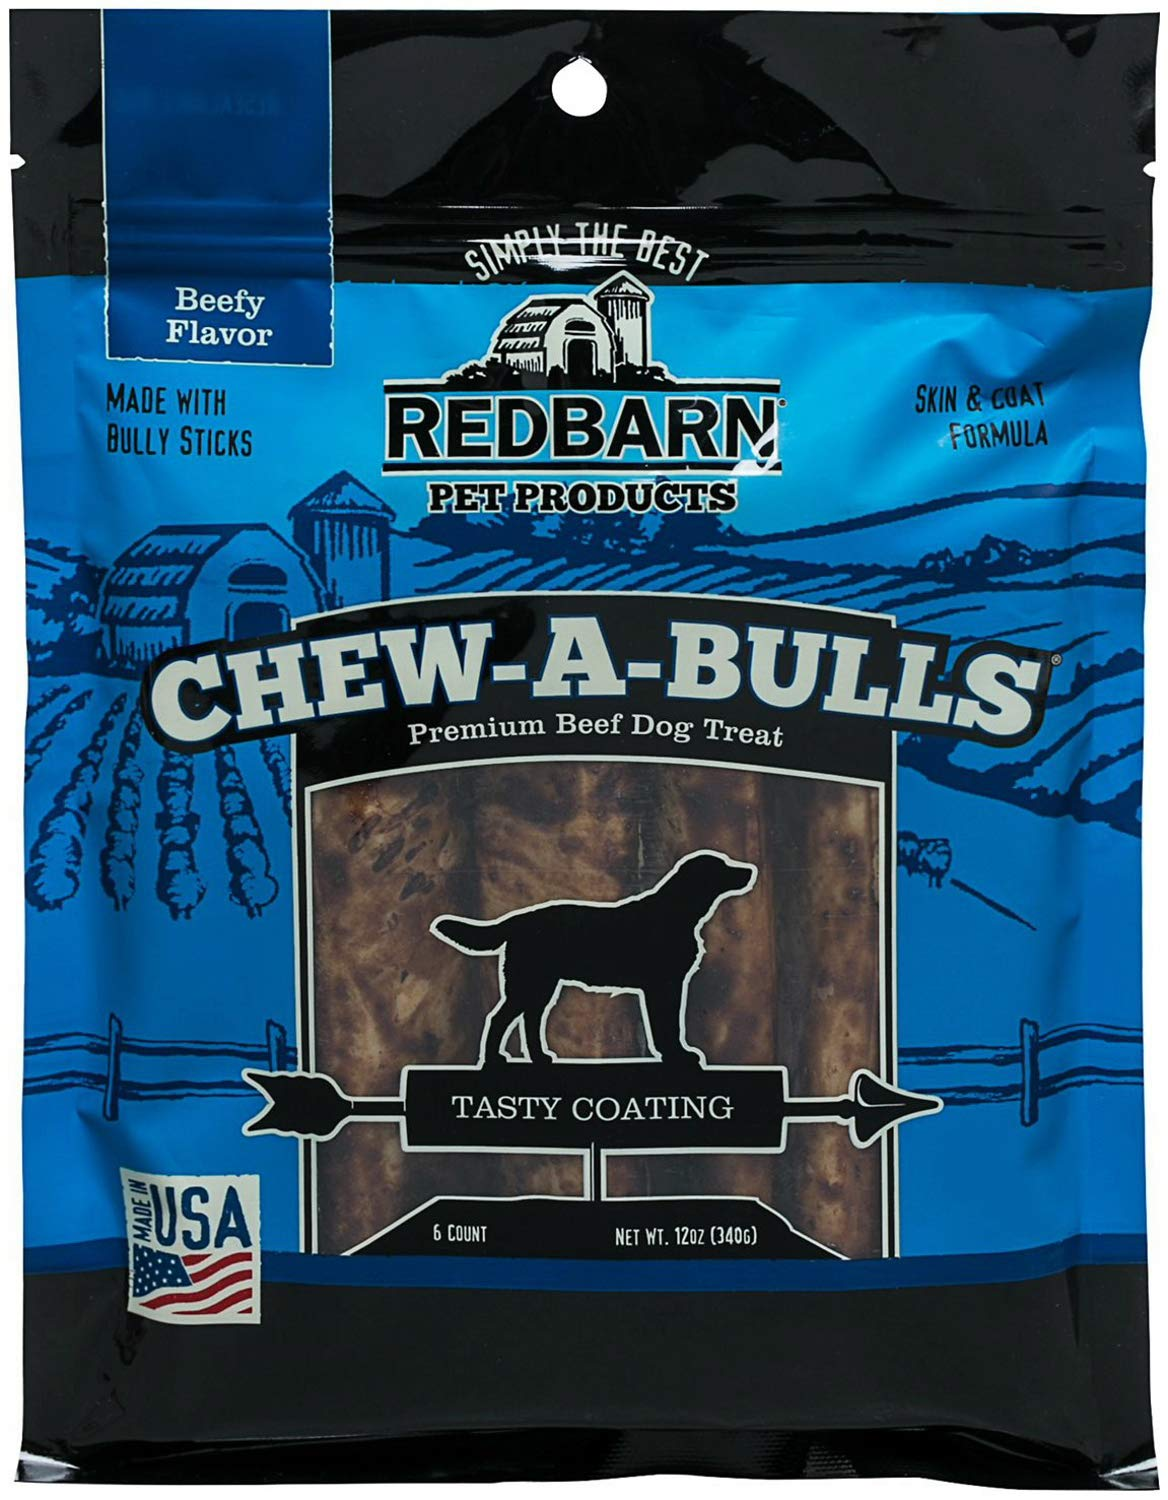 Redbarn Pet Products, Beef Chew-A-Bulls 6 pack